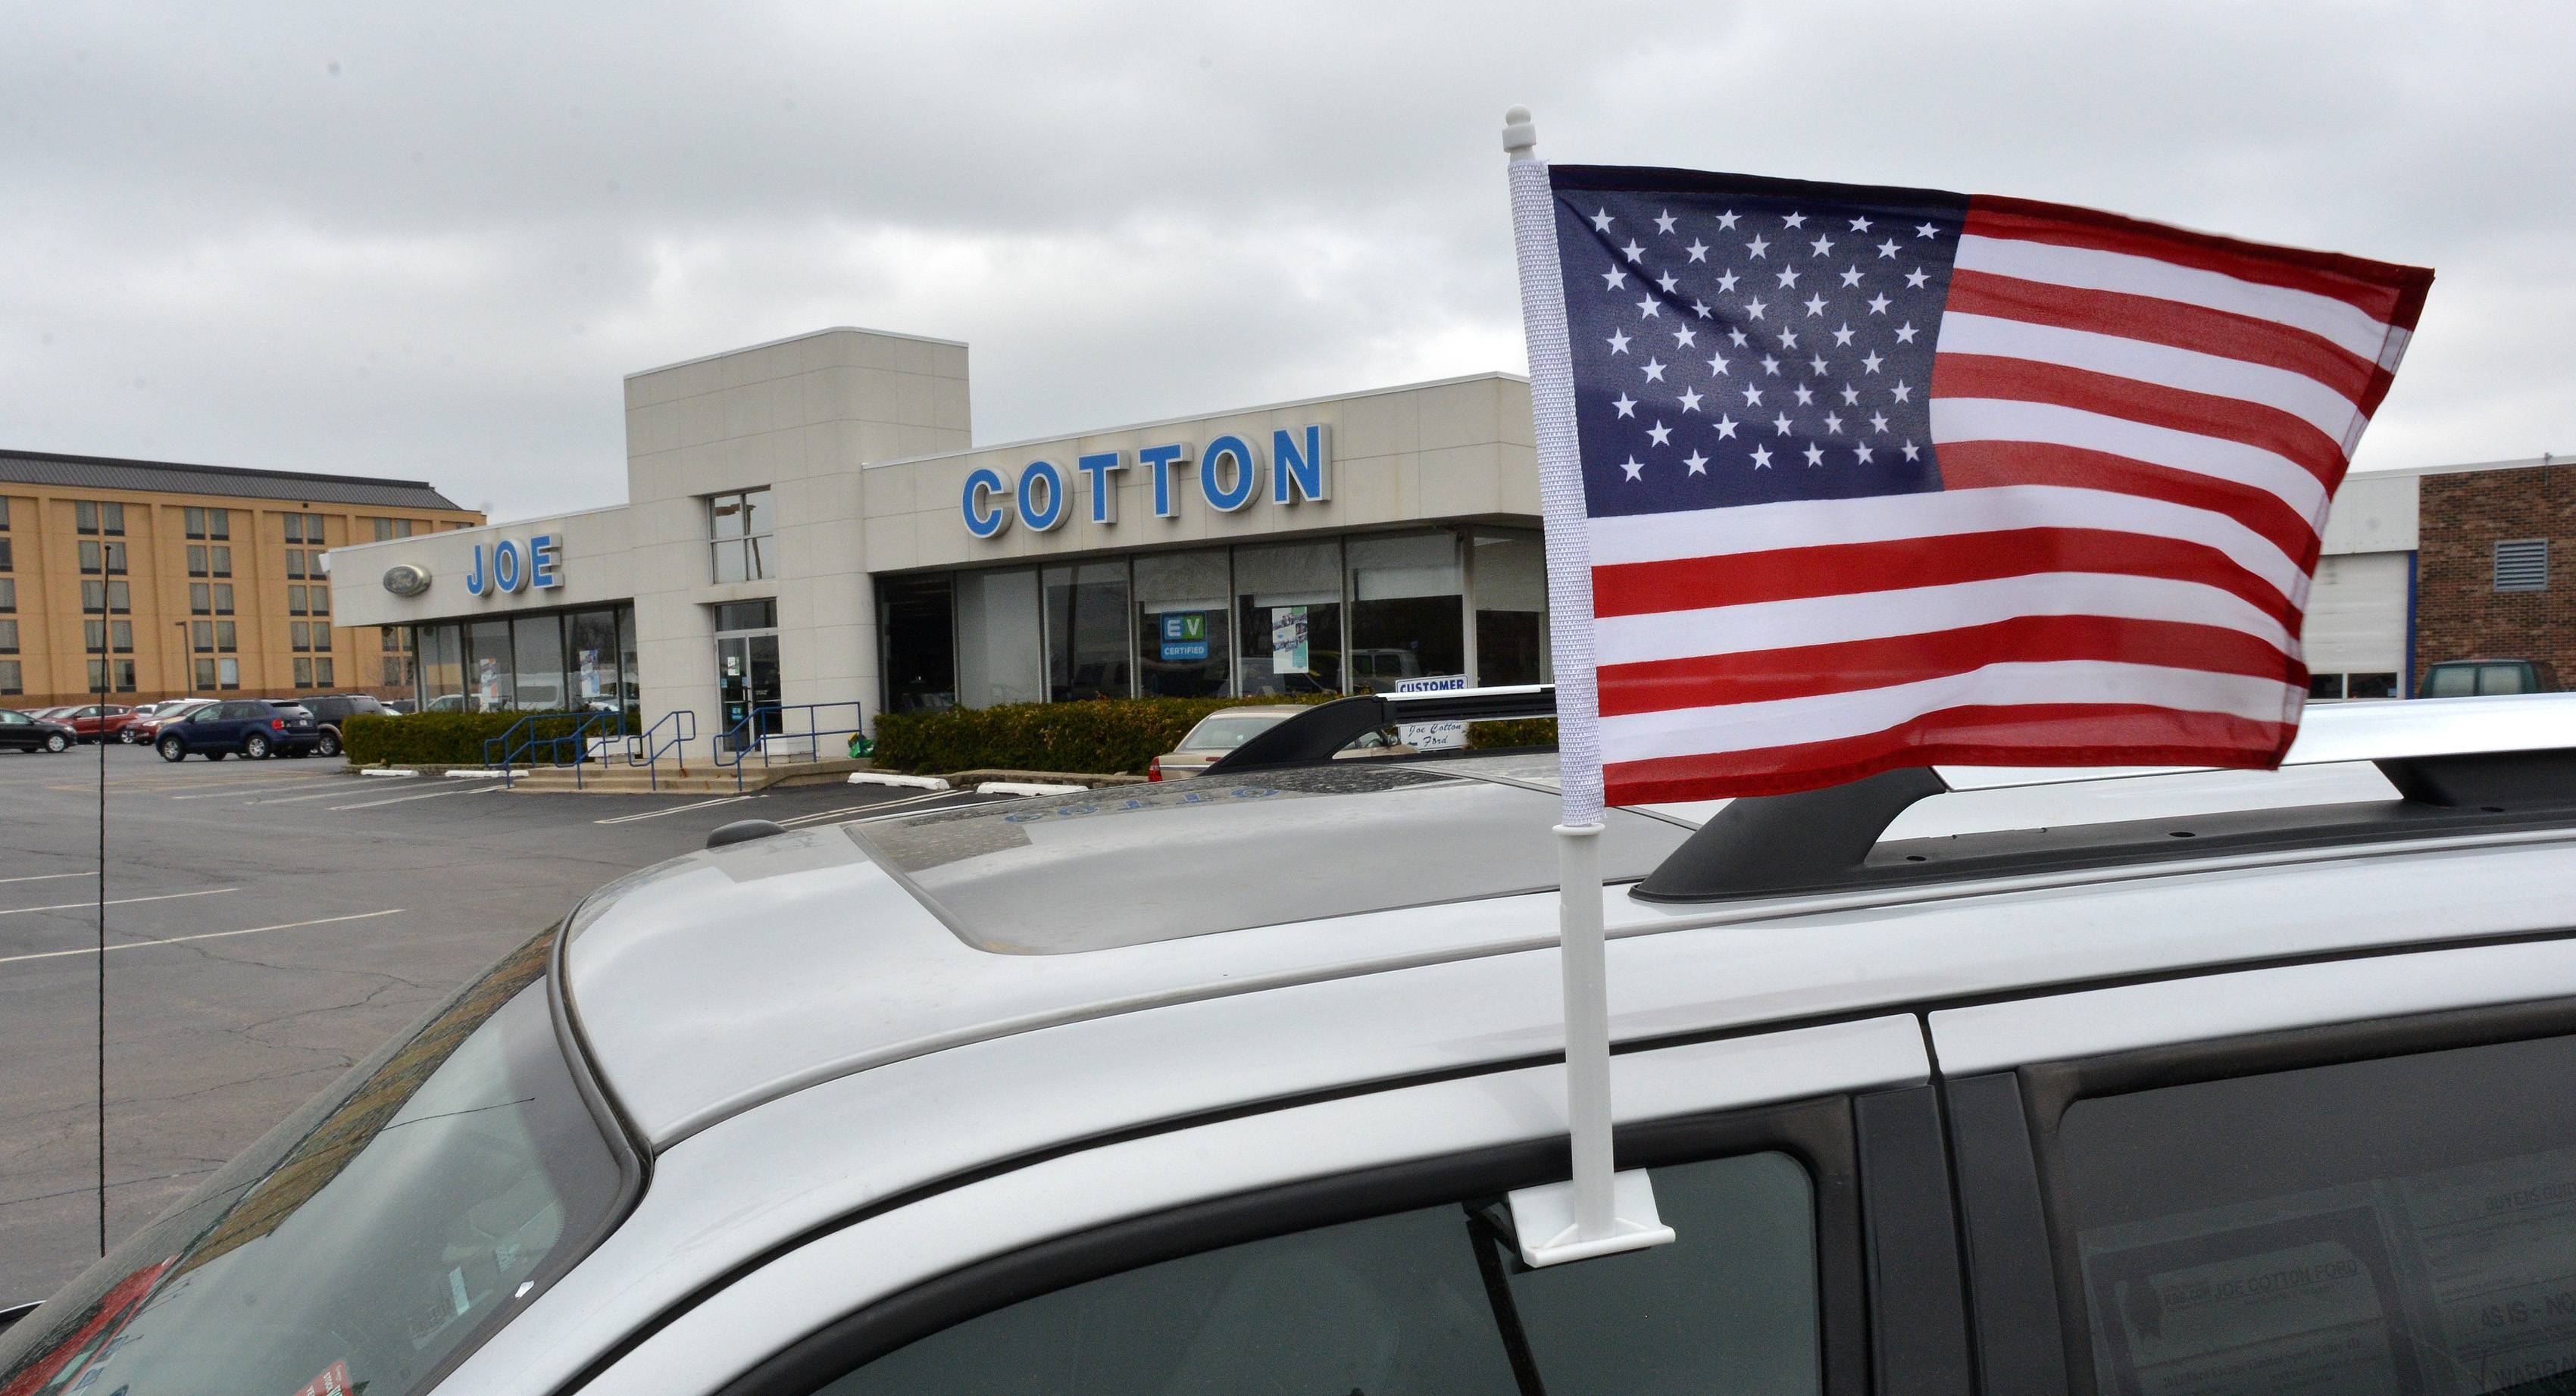 Joe Cotton Ford in Carol Stream.